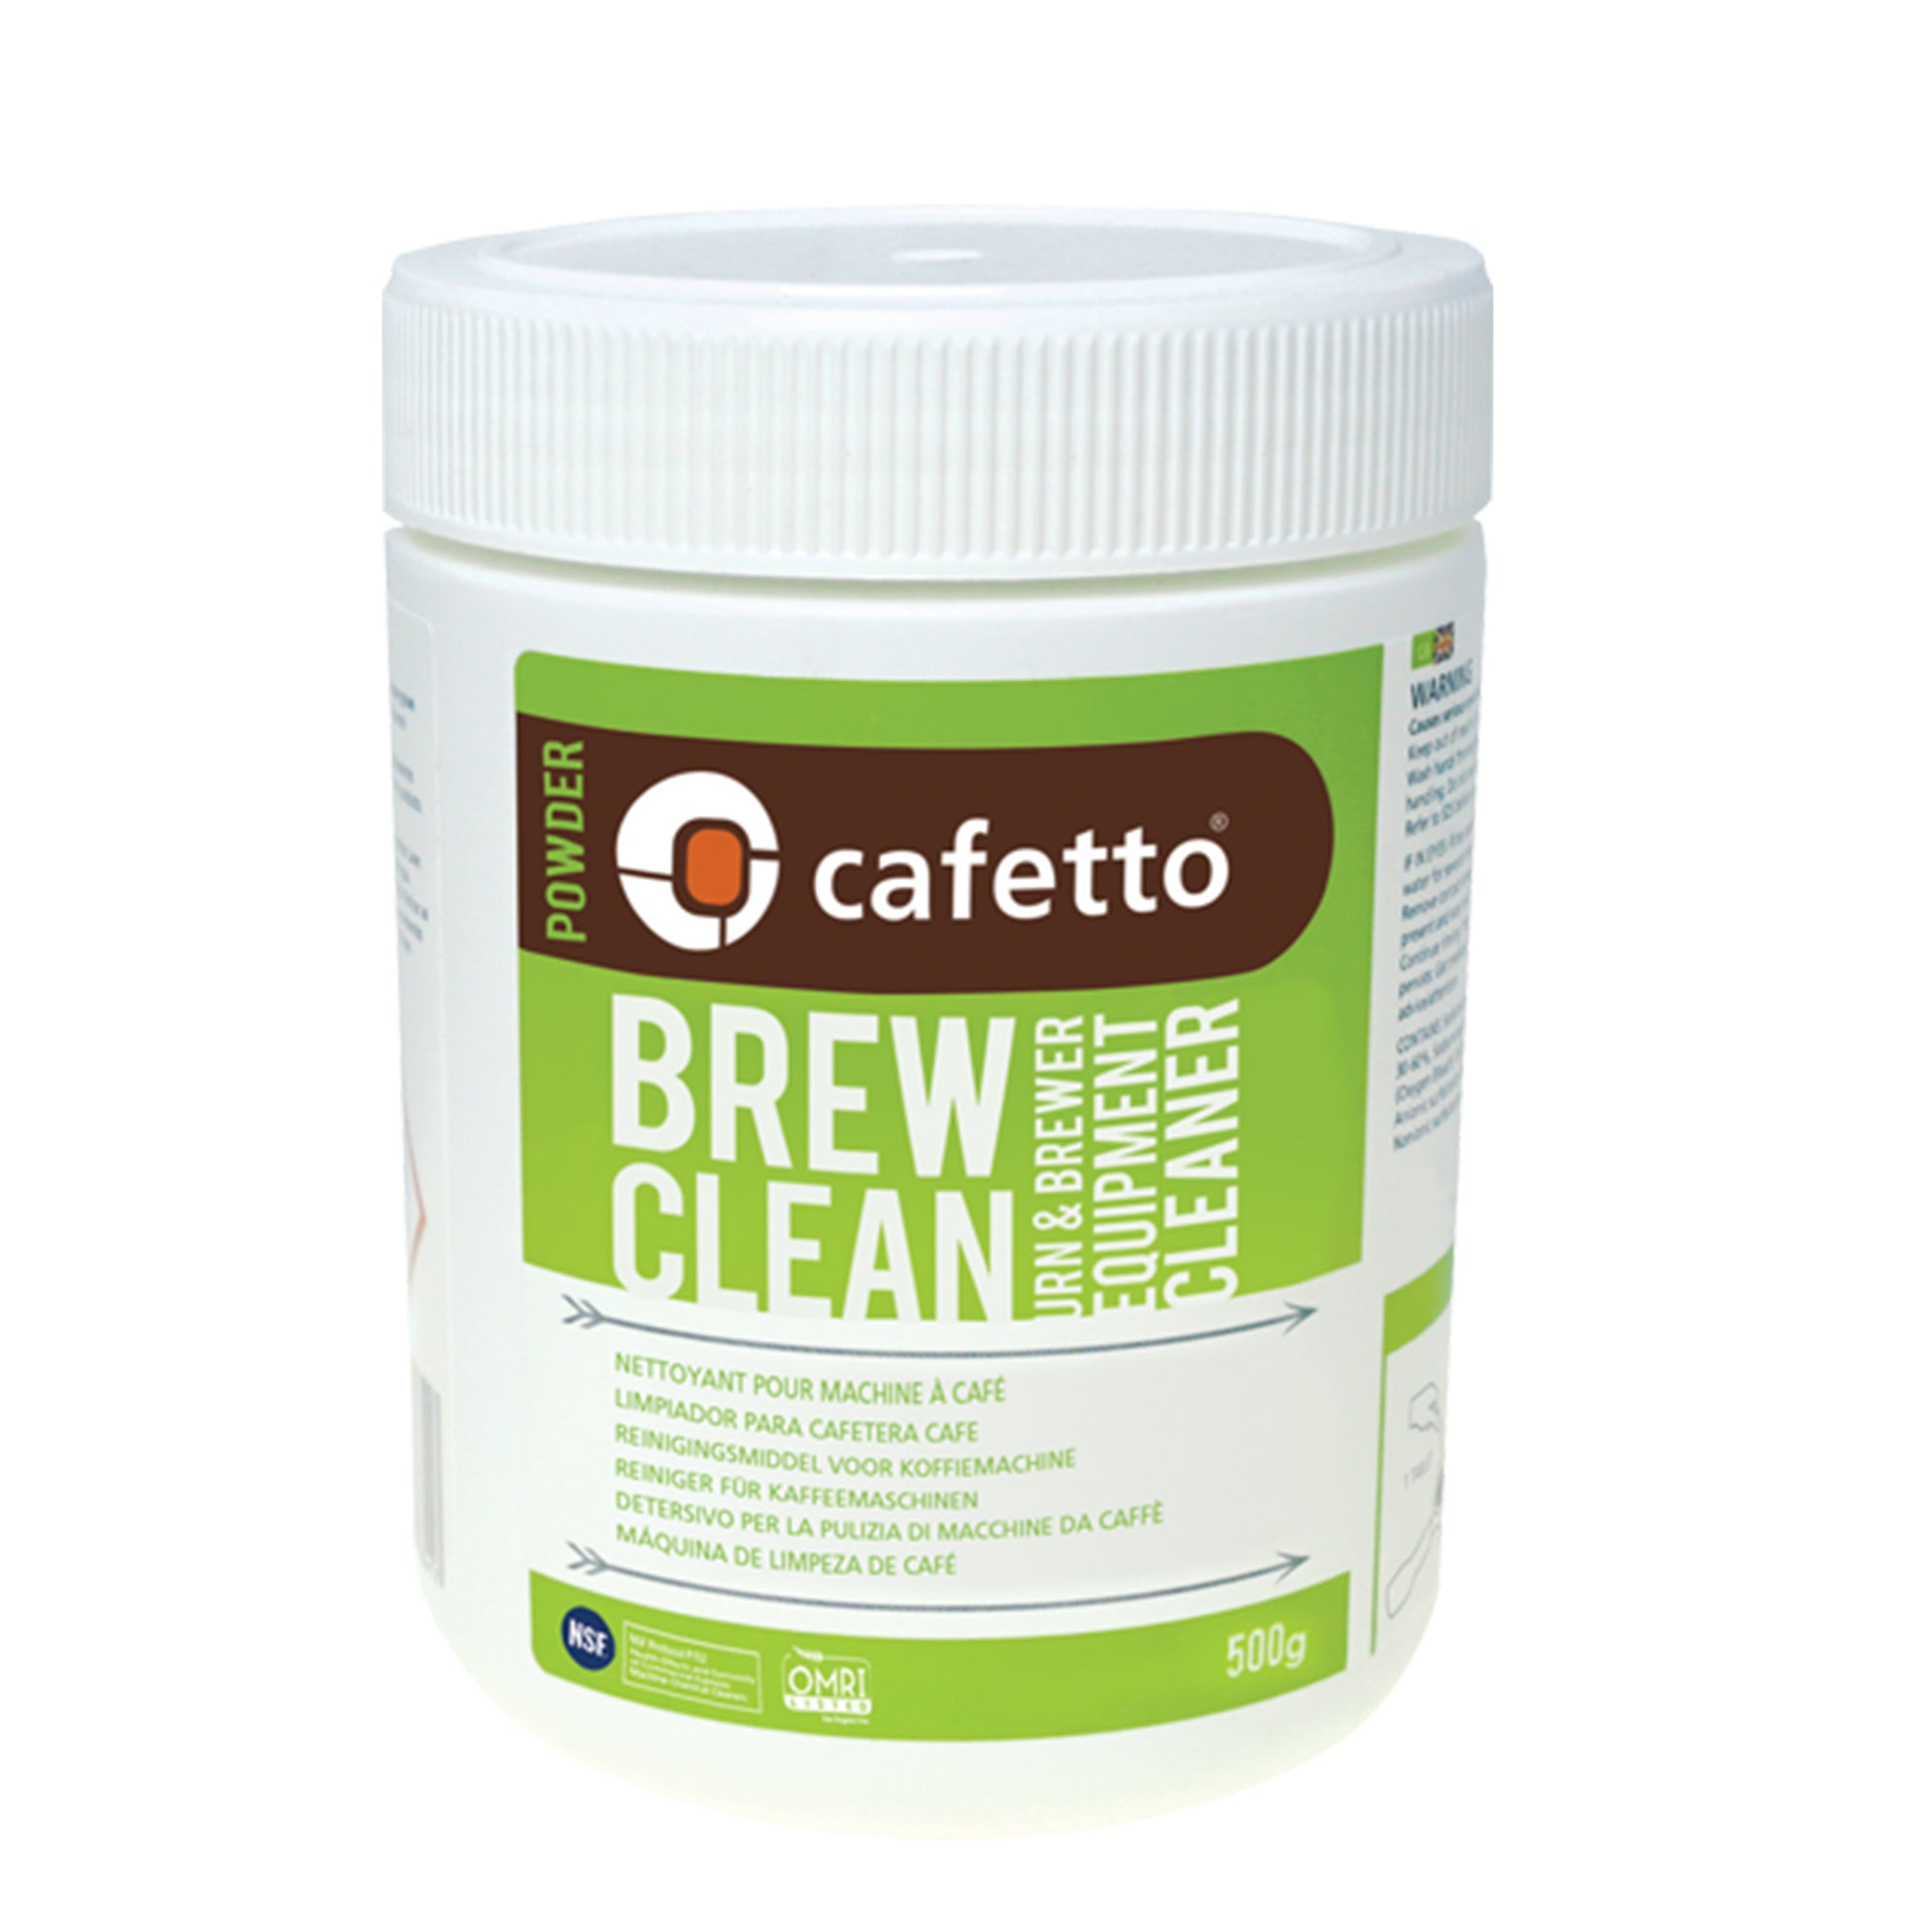 Organic Brew Clean Powder - Cafetto - Espresso Gear